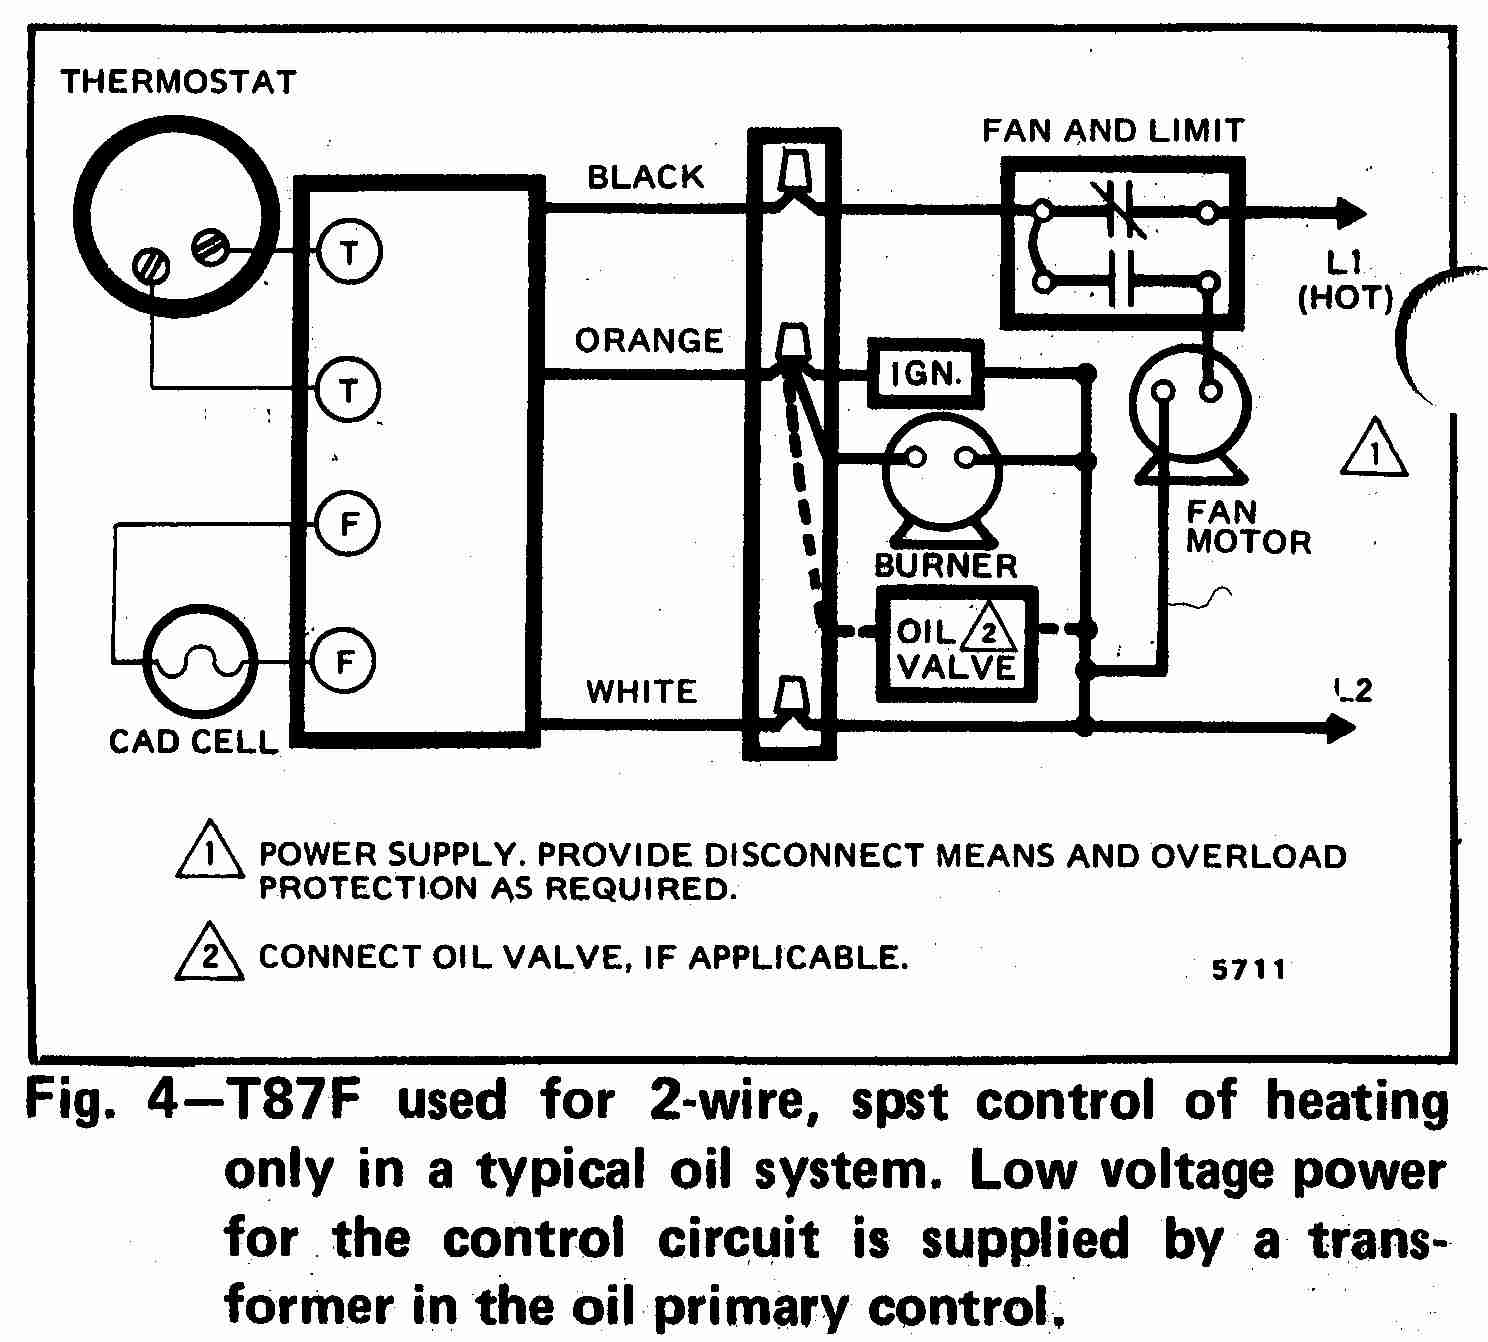 TT_T87F_0002_2W_DJF room thermostat wiring diagrams for hvac systems honeywell thermostat wiring schematic at nearapp.co